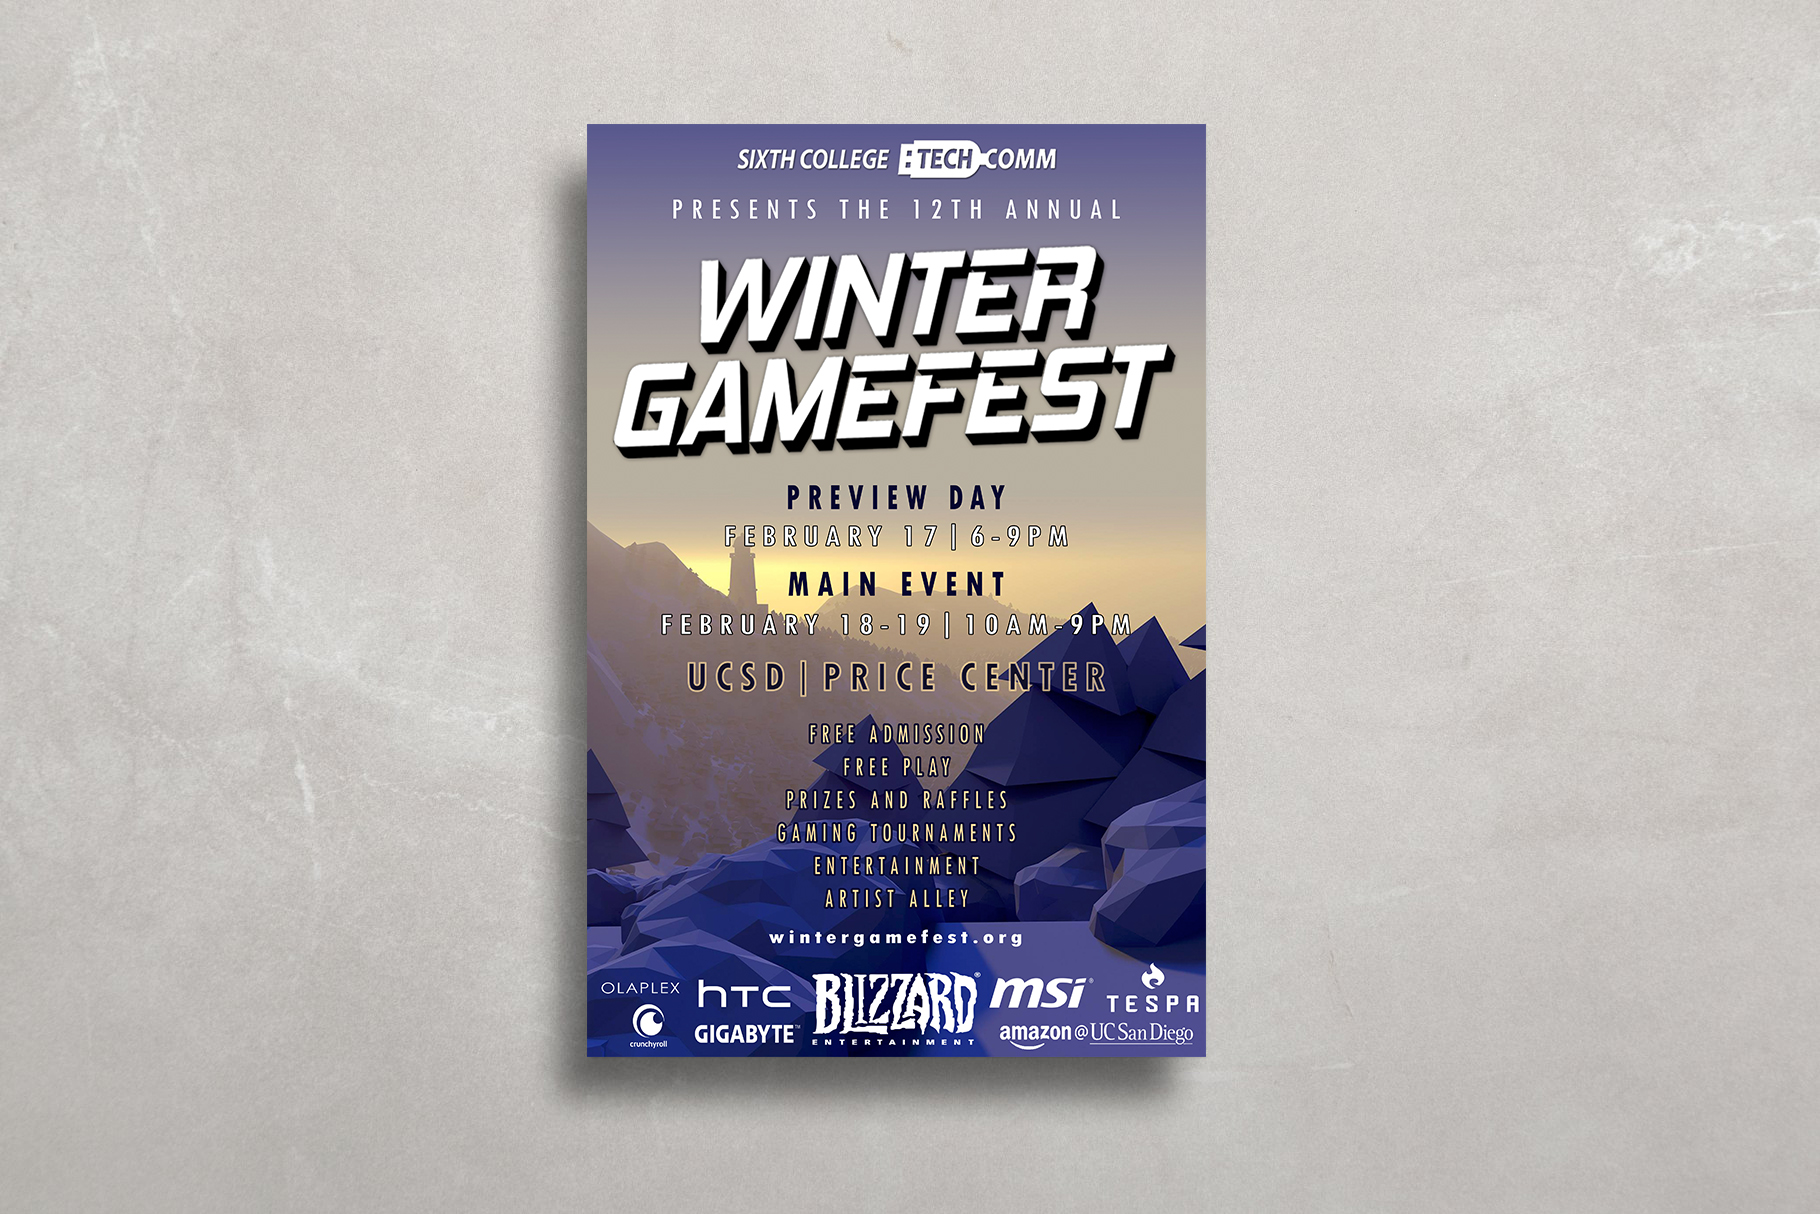 Official poster print design for Winter GameFest 2017 made in collaboration with Sixth College Technology Committee.